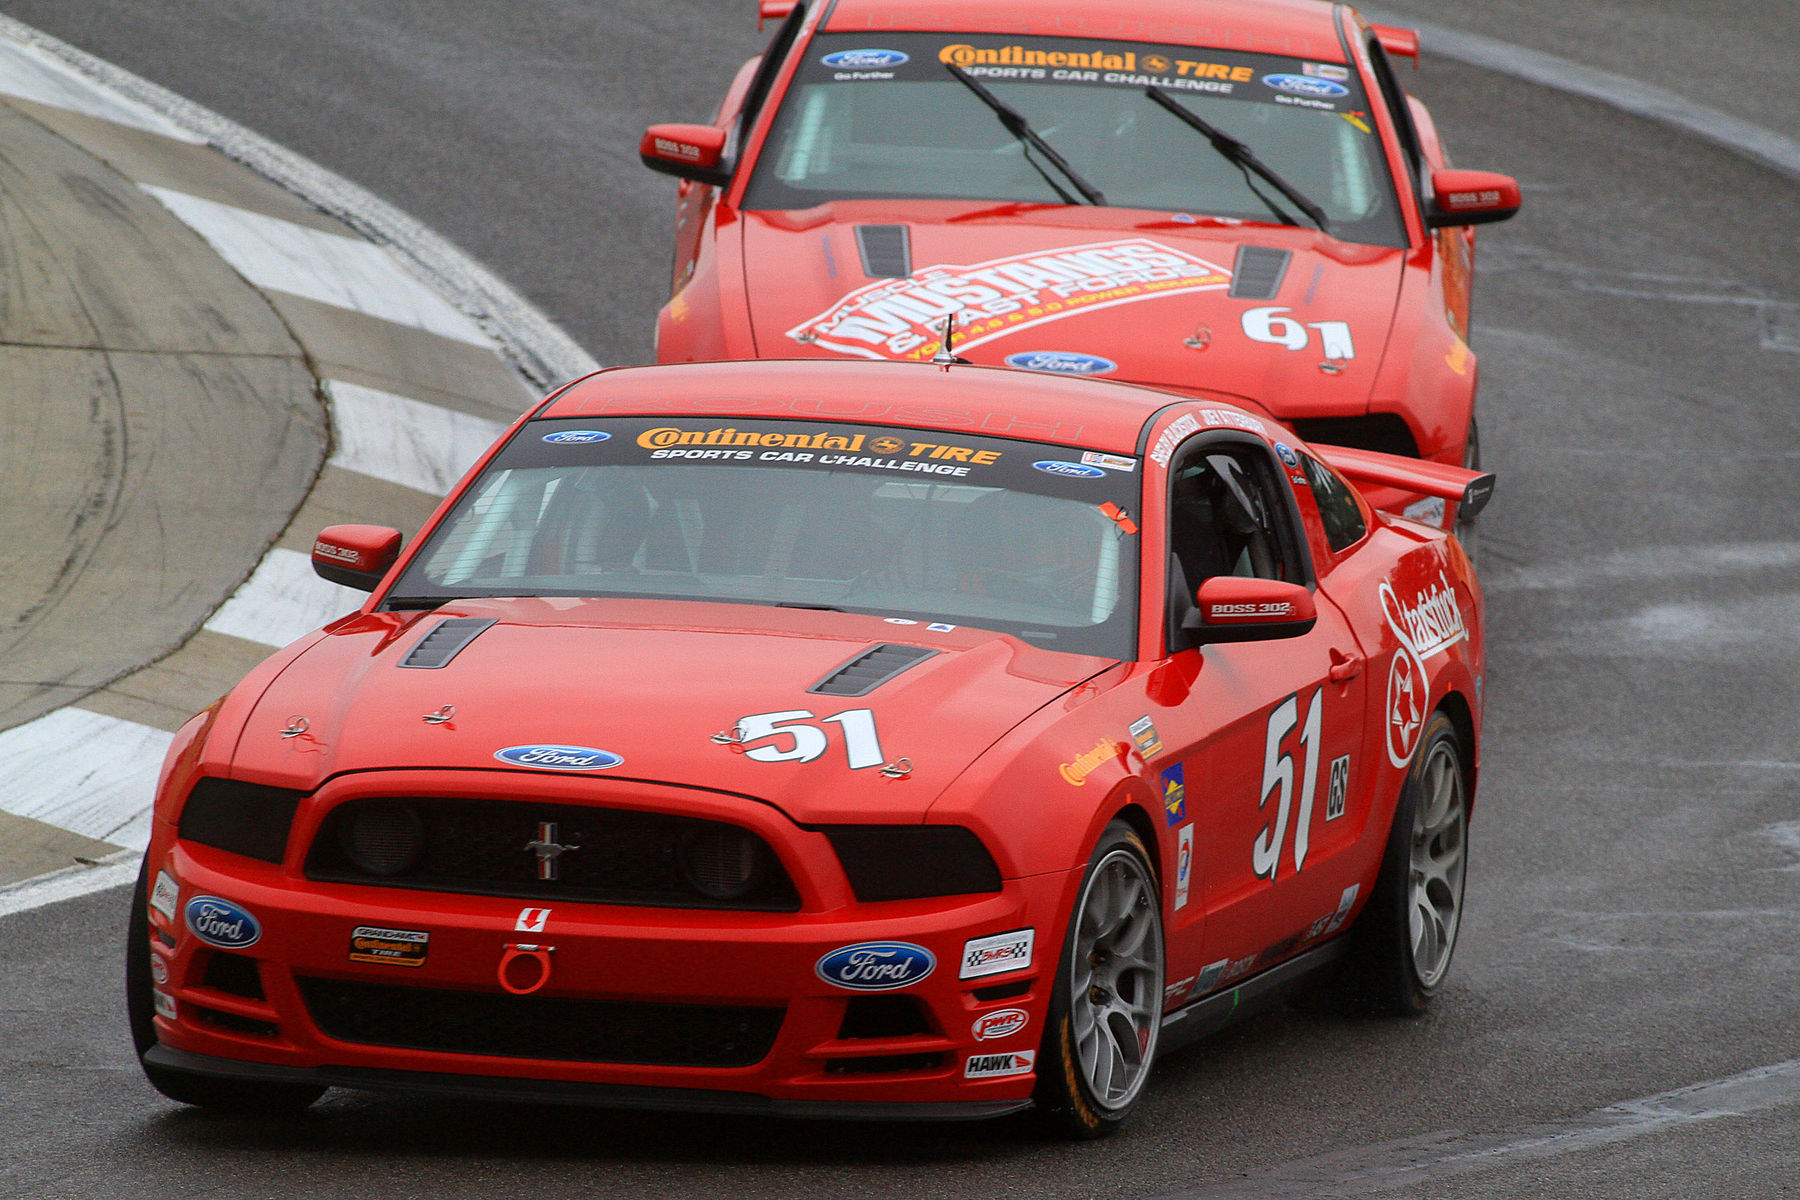 | Competition was fierce at Barber, all running fast on their Continental Tires